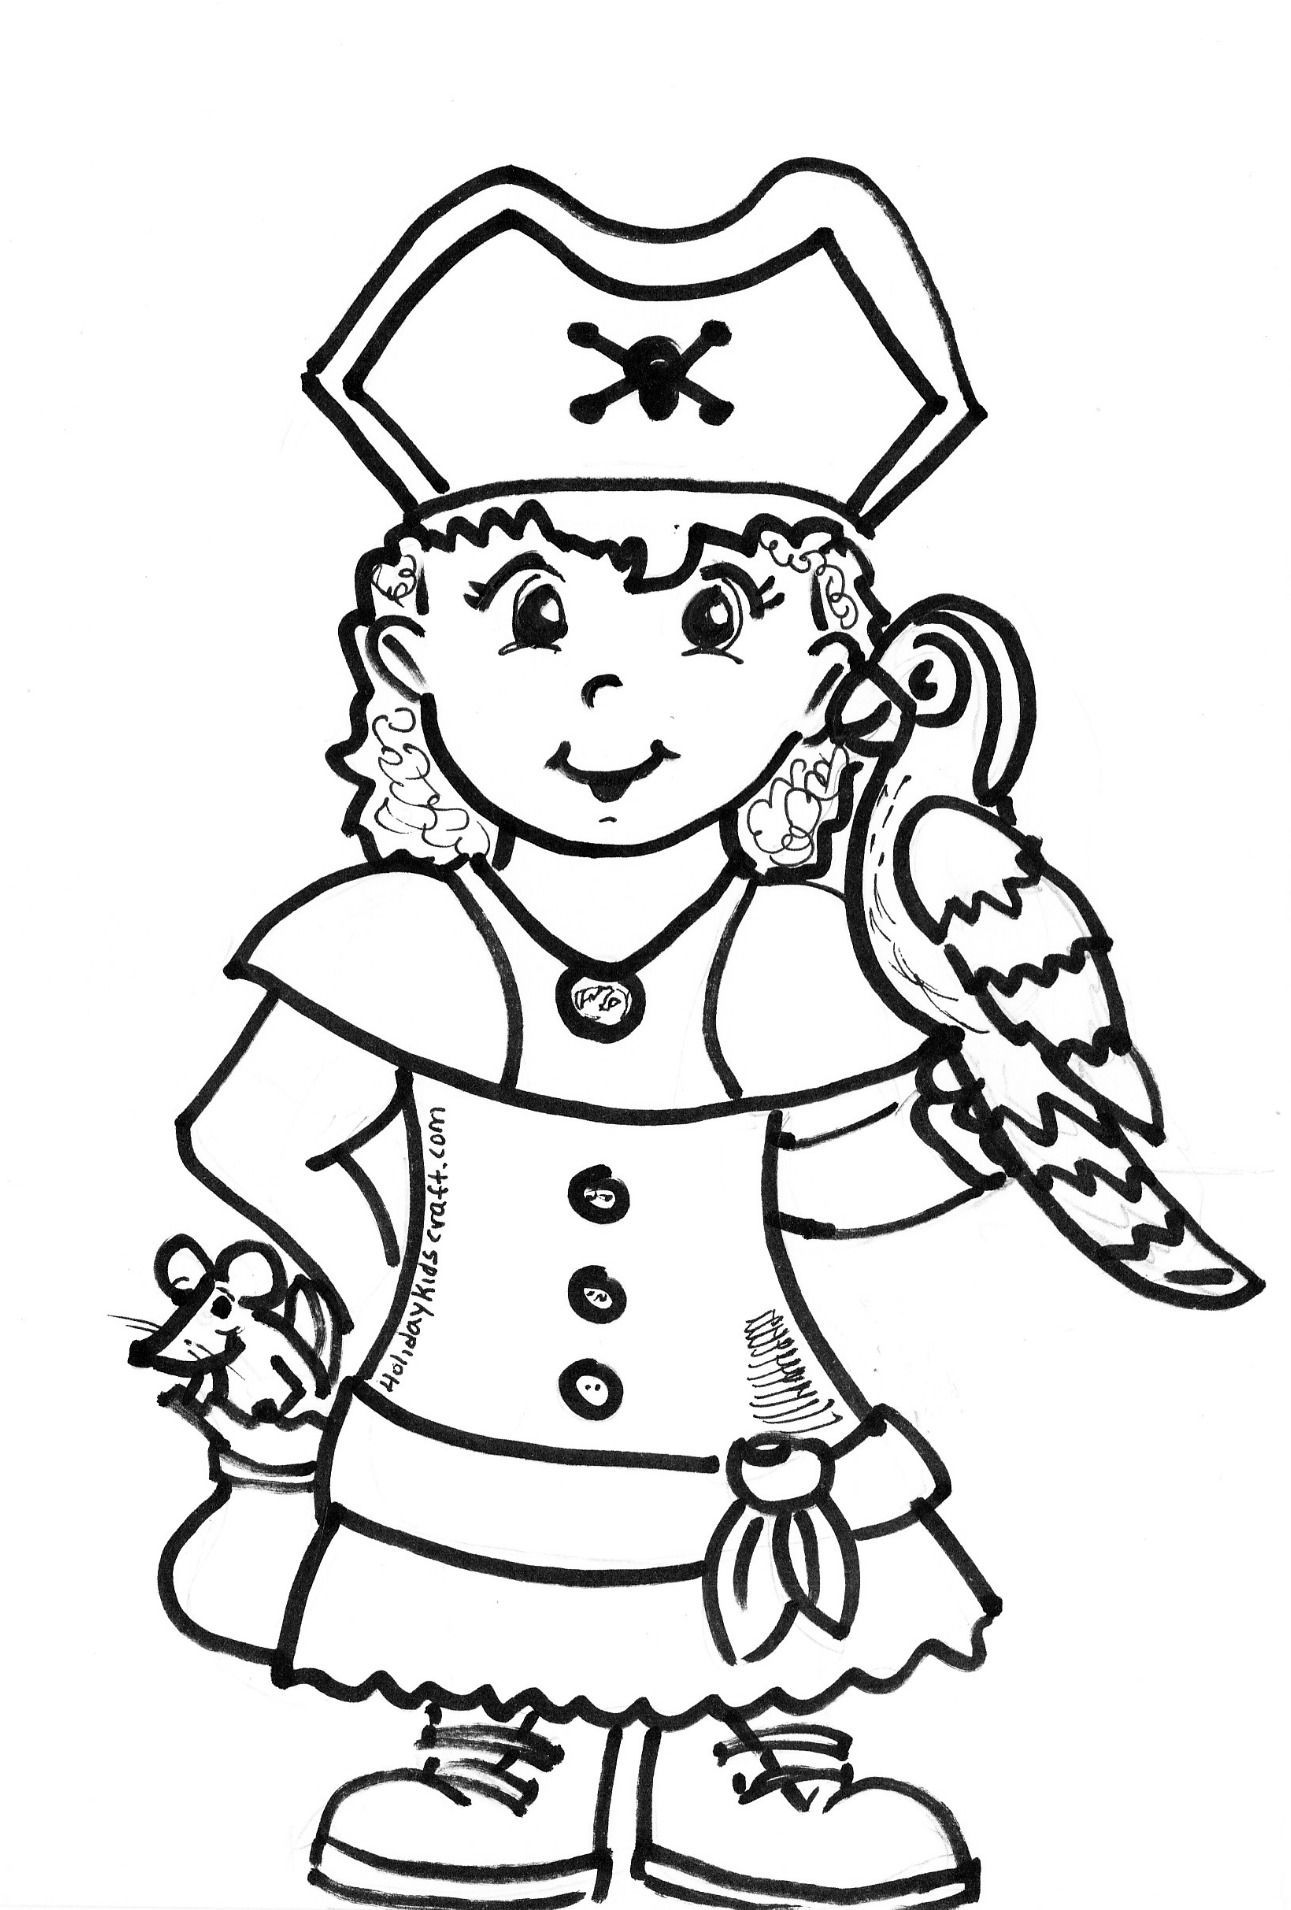 Pirate colouring pages to print - Girl Pirate Coloring Page